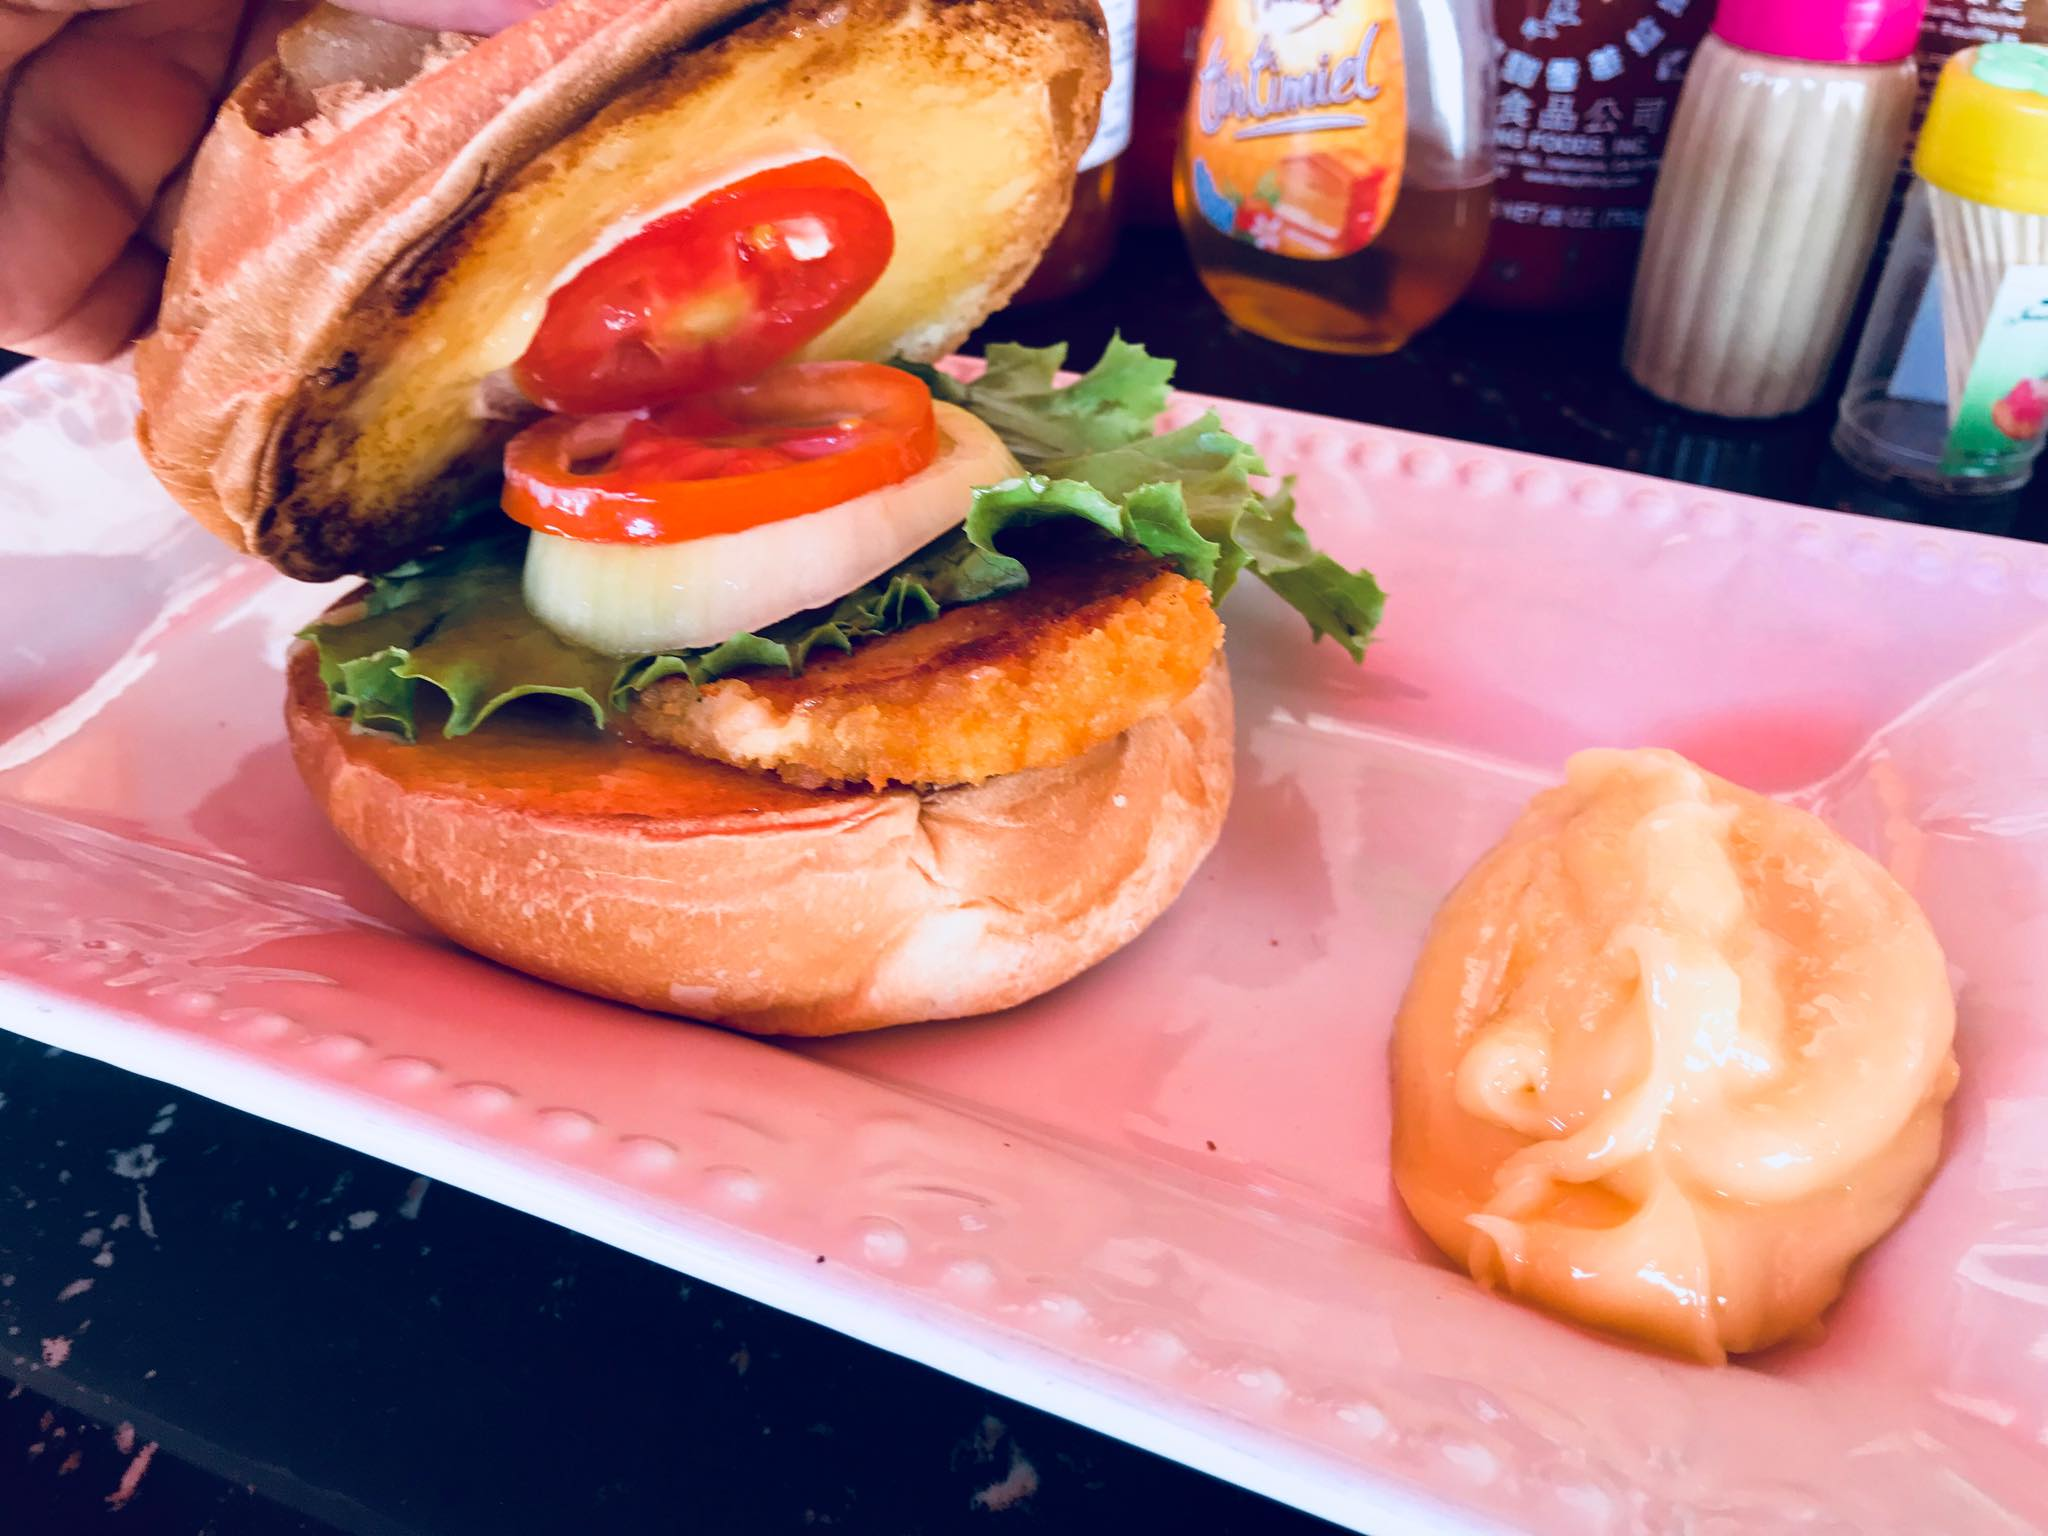 Speed Burger Abidjan ou comment rater son fast-food , serial foodie, critique culinaire, critique restaurant, Abidjan, cote d'ivoire, tripadvisor, petit futé, tourisme, tripinafrica,